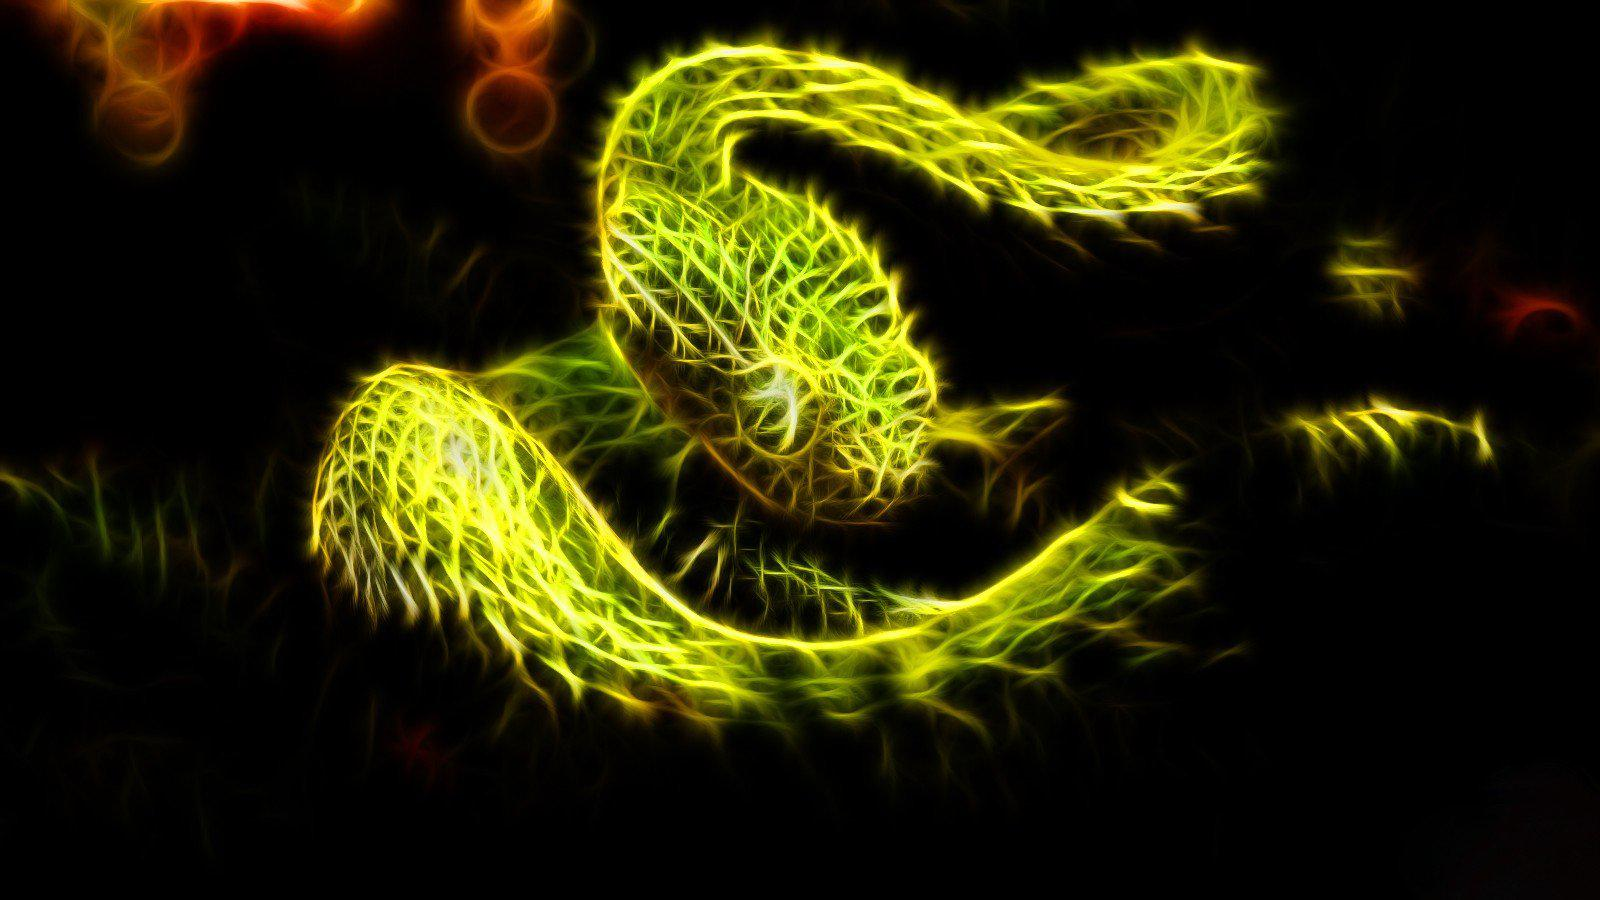 Animated Snake Wallpaper Hd Nature Fractalius Snakes Glow Reptiles Free Wallpaper